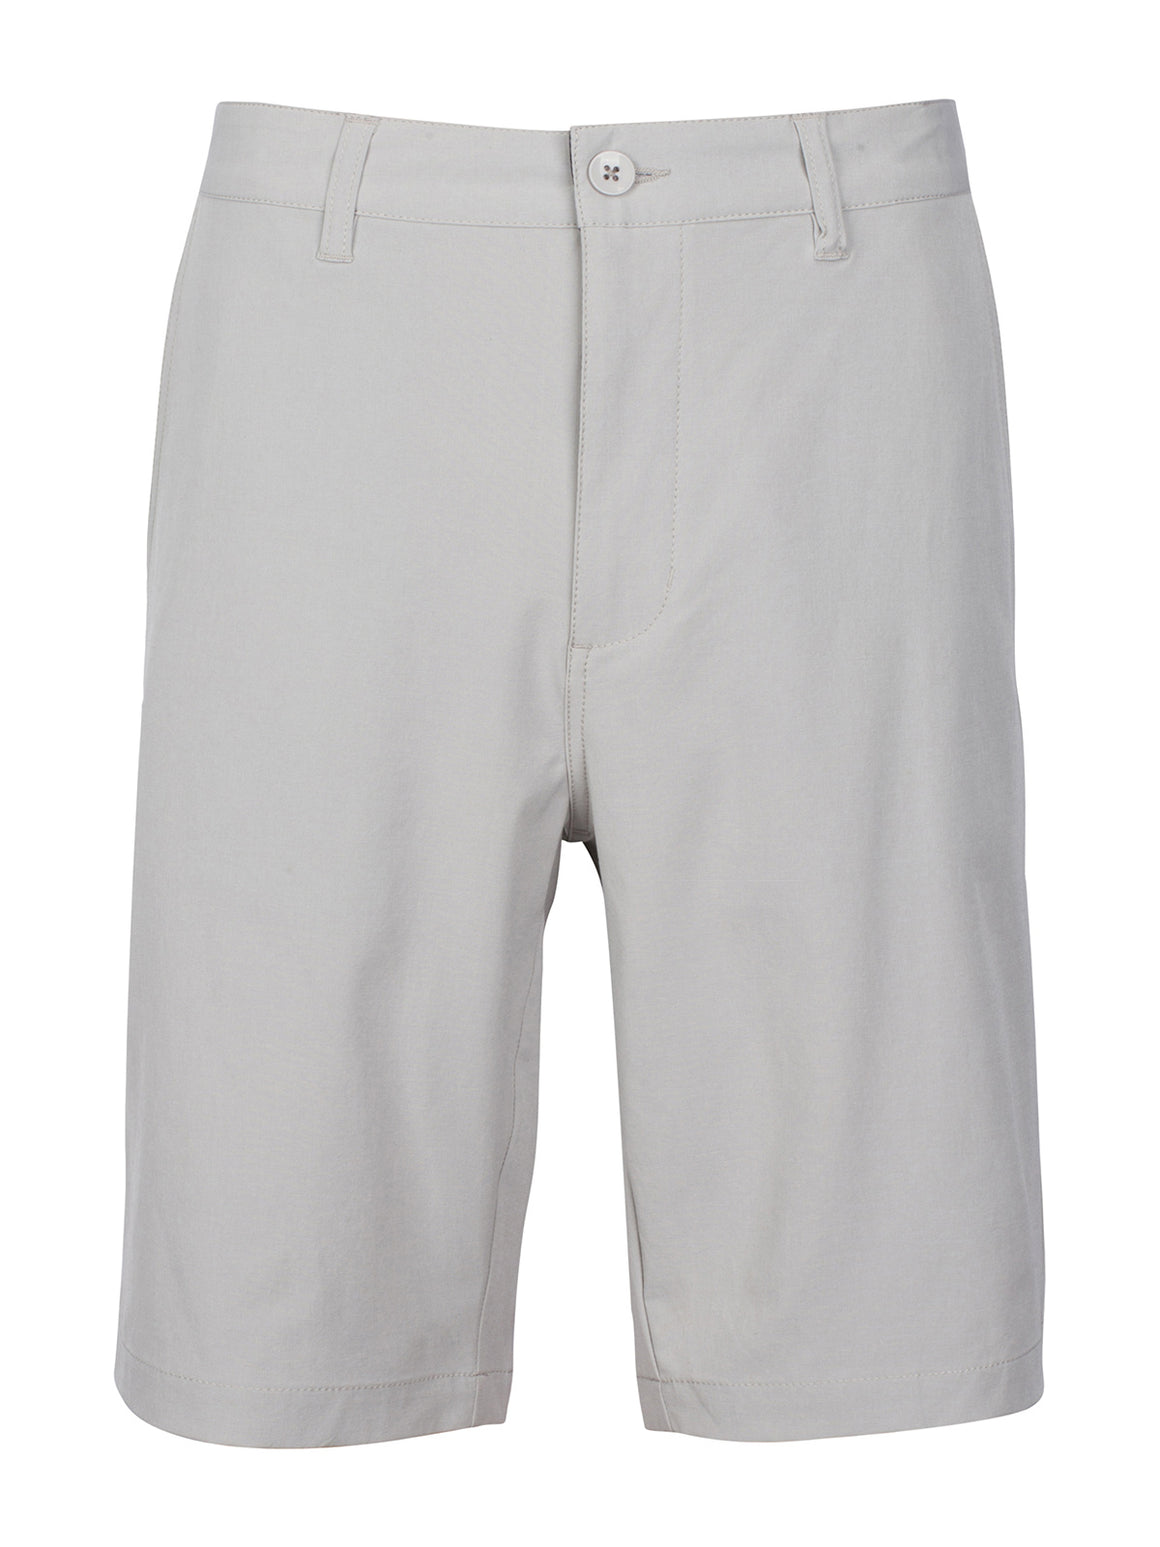 Traveler FIT101 Short - Chalk